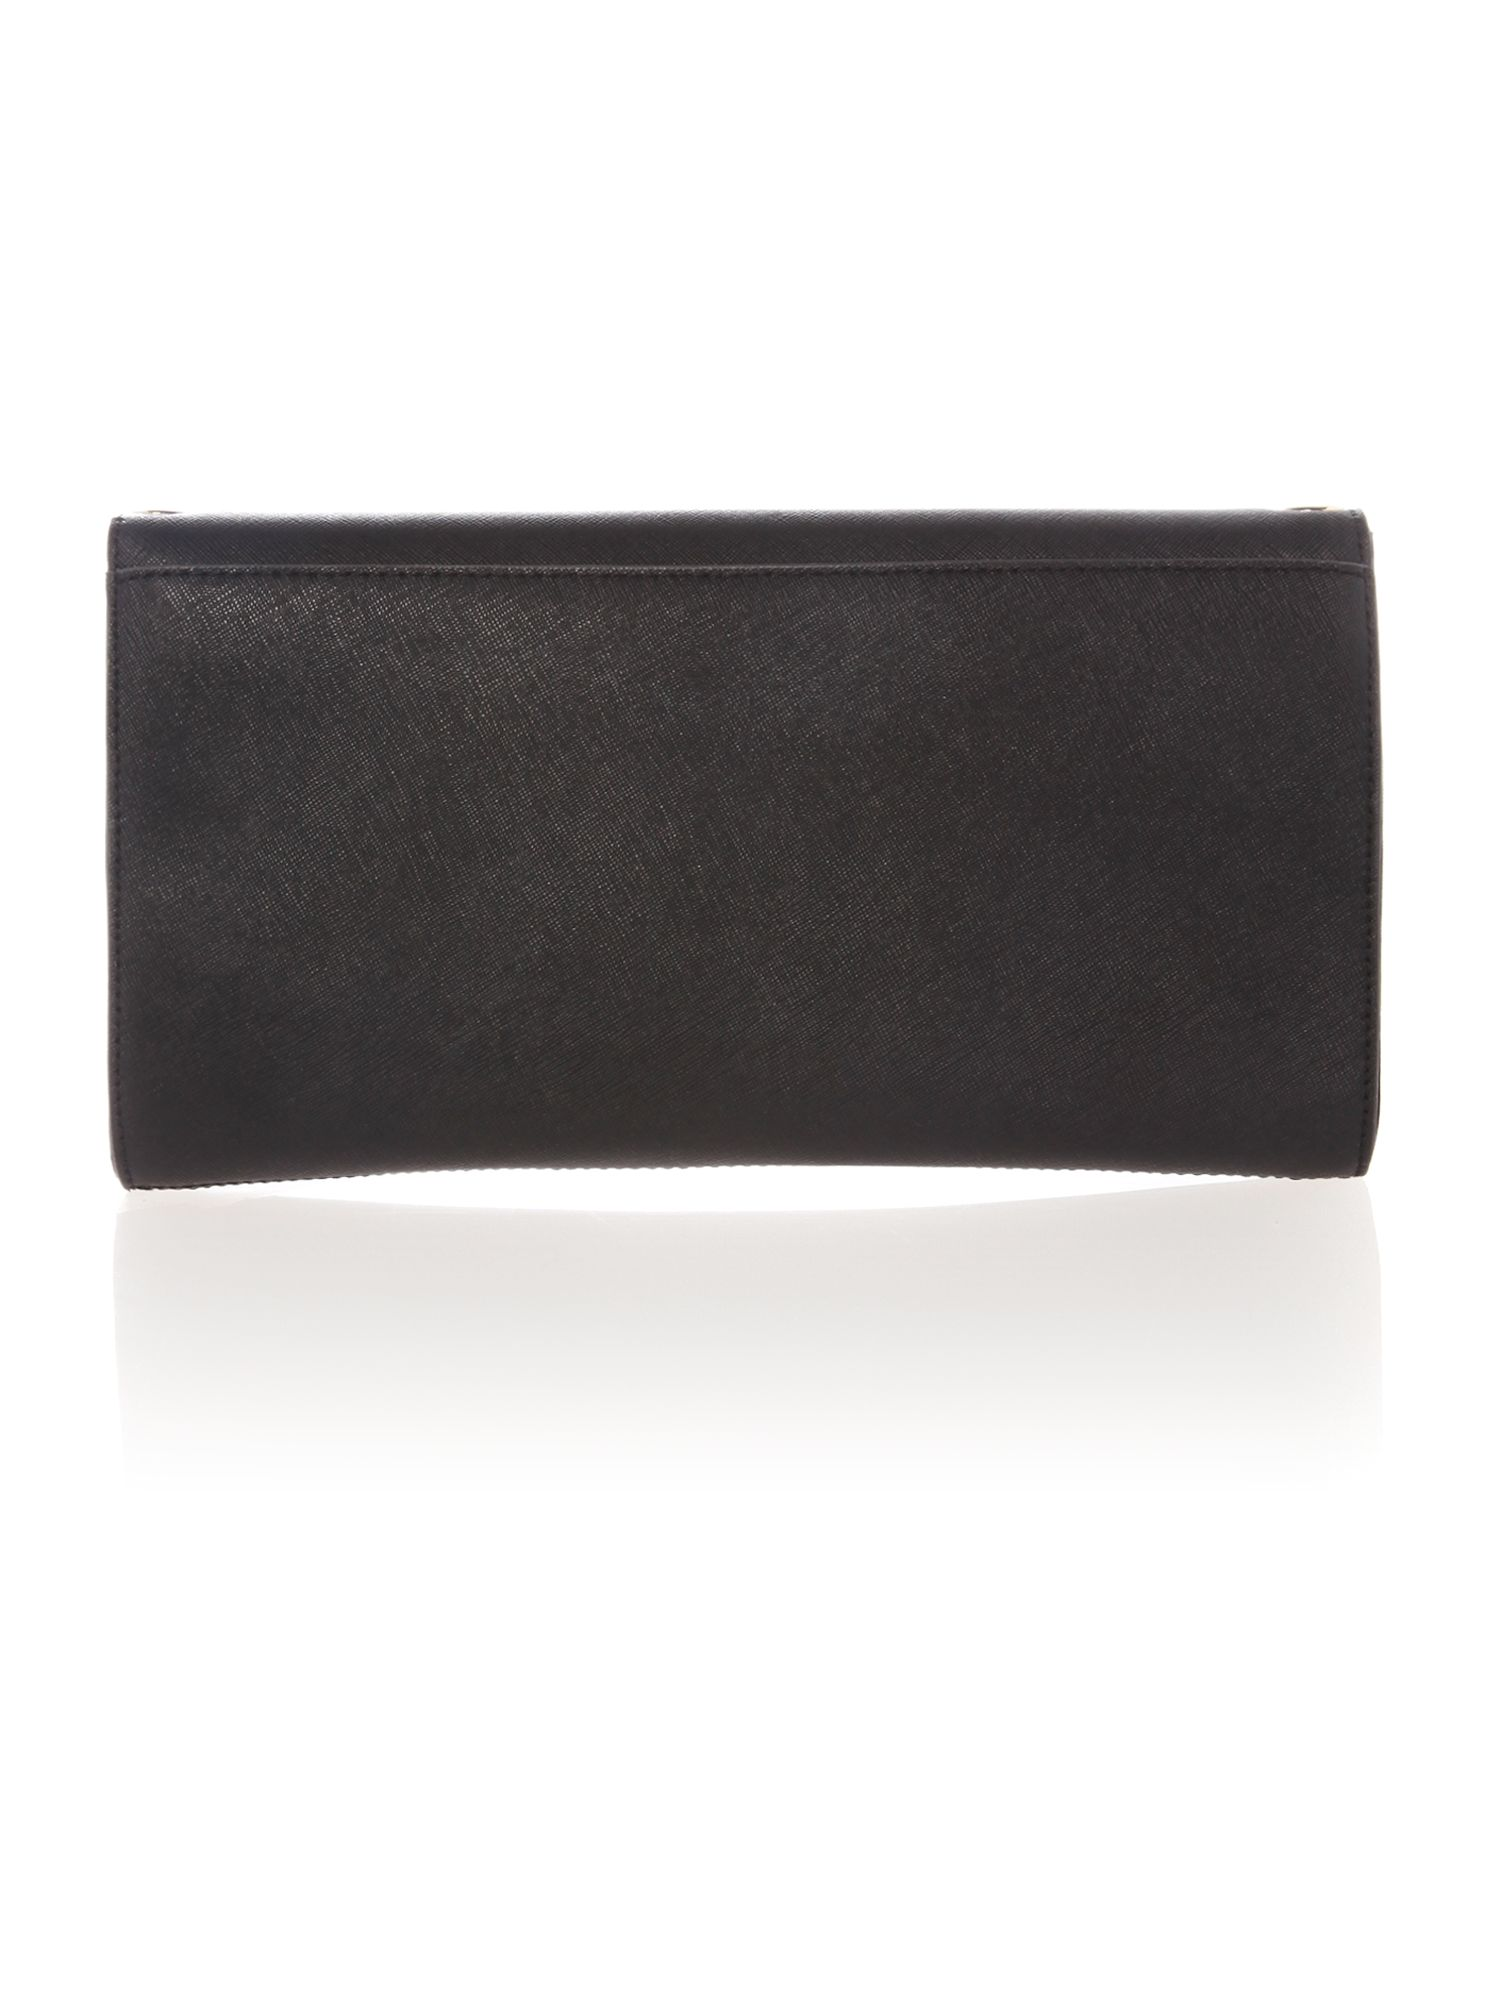 Soft saffiano black flap over clutch bag